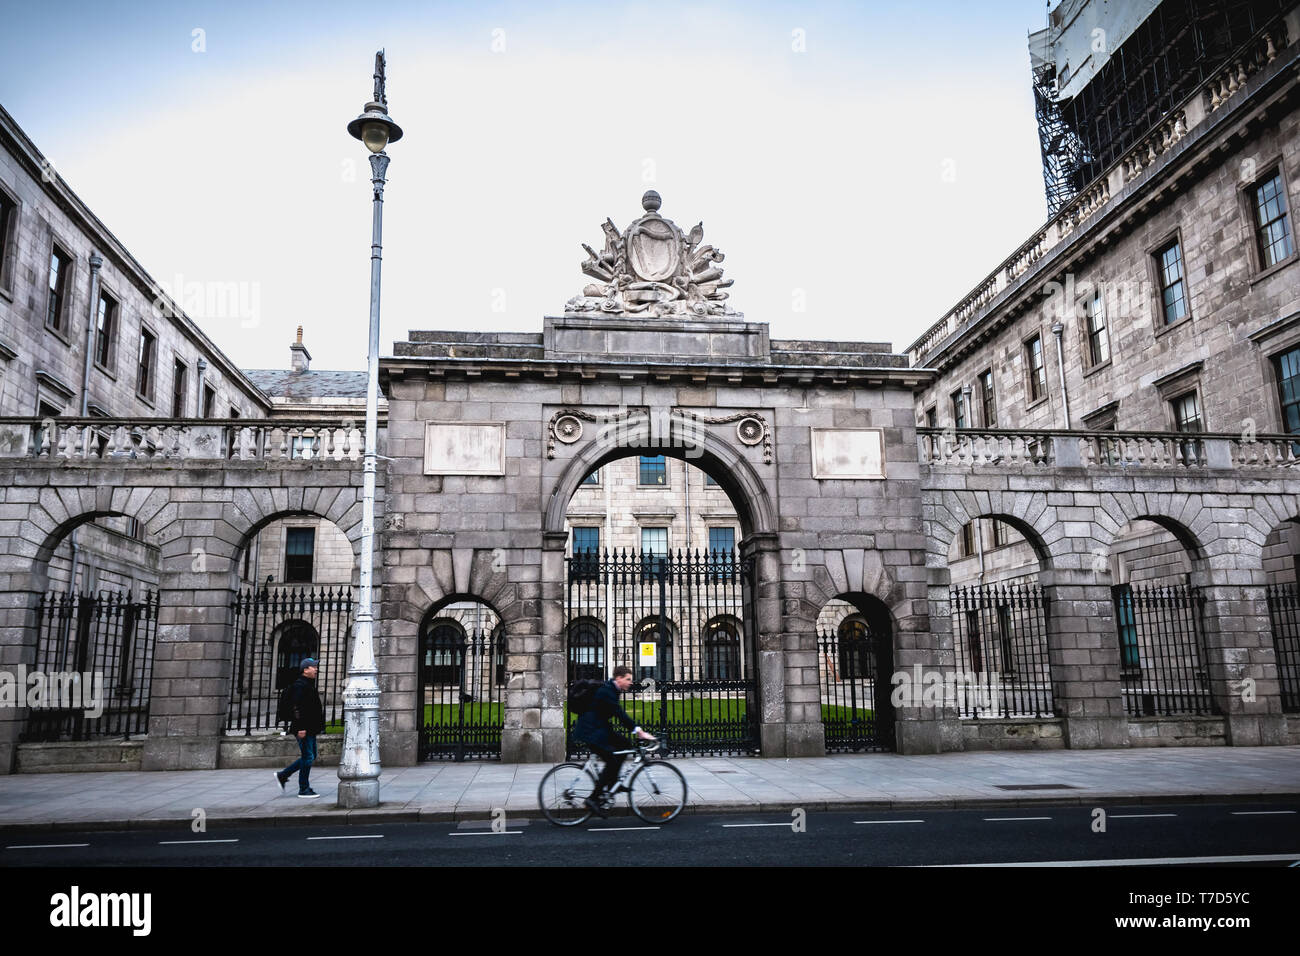 Dublin, Ireland - February 11, 2019: Architectural detail of the Dublin Four Court Courthouse on a winter day - Stock Image